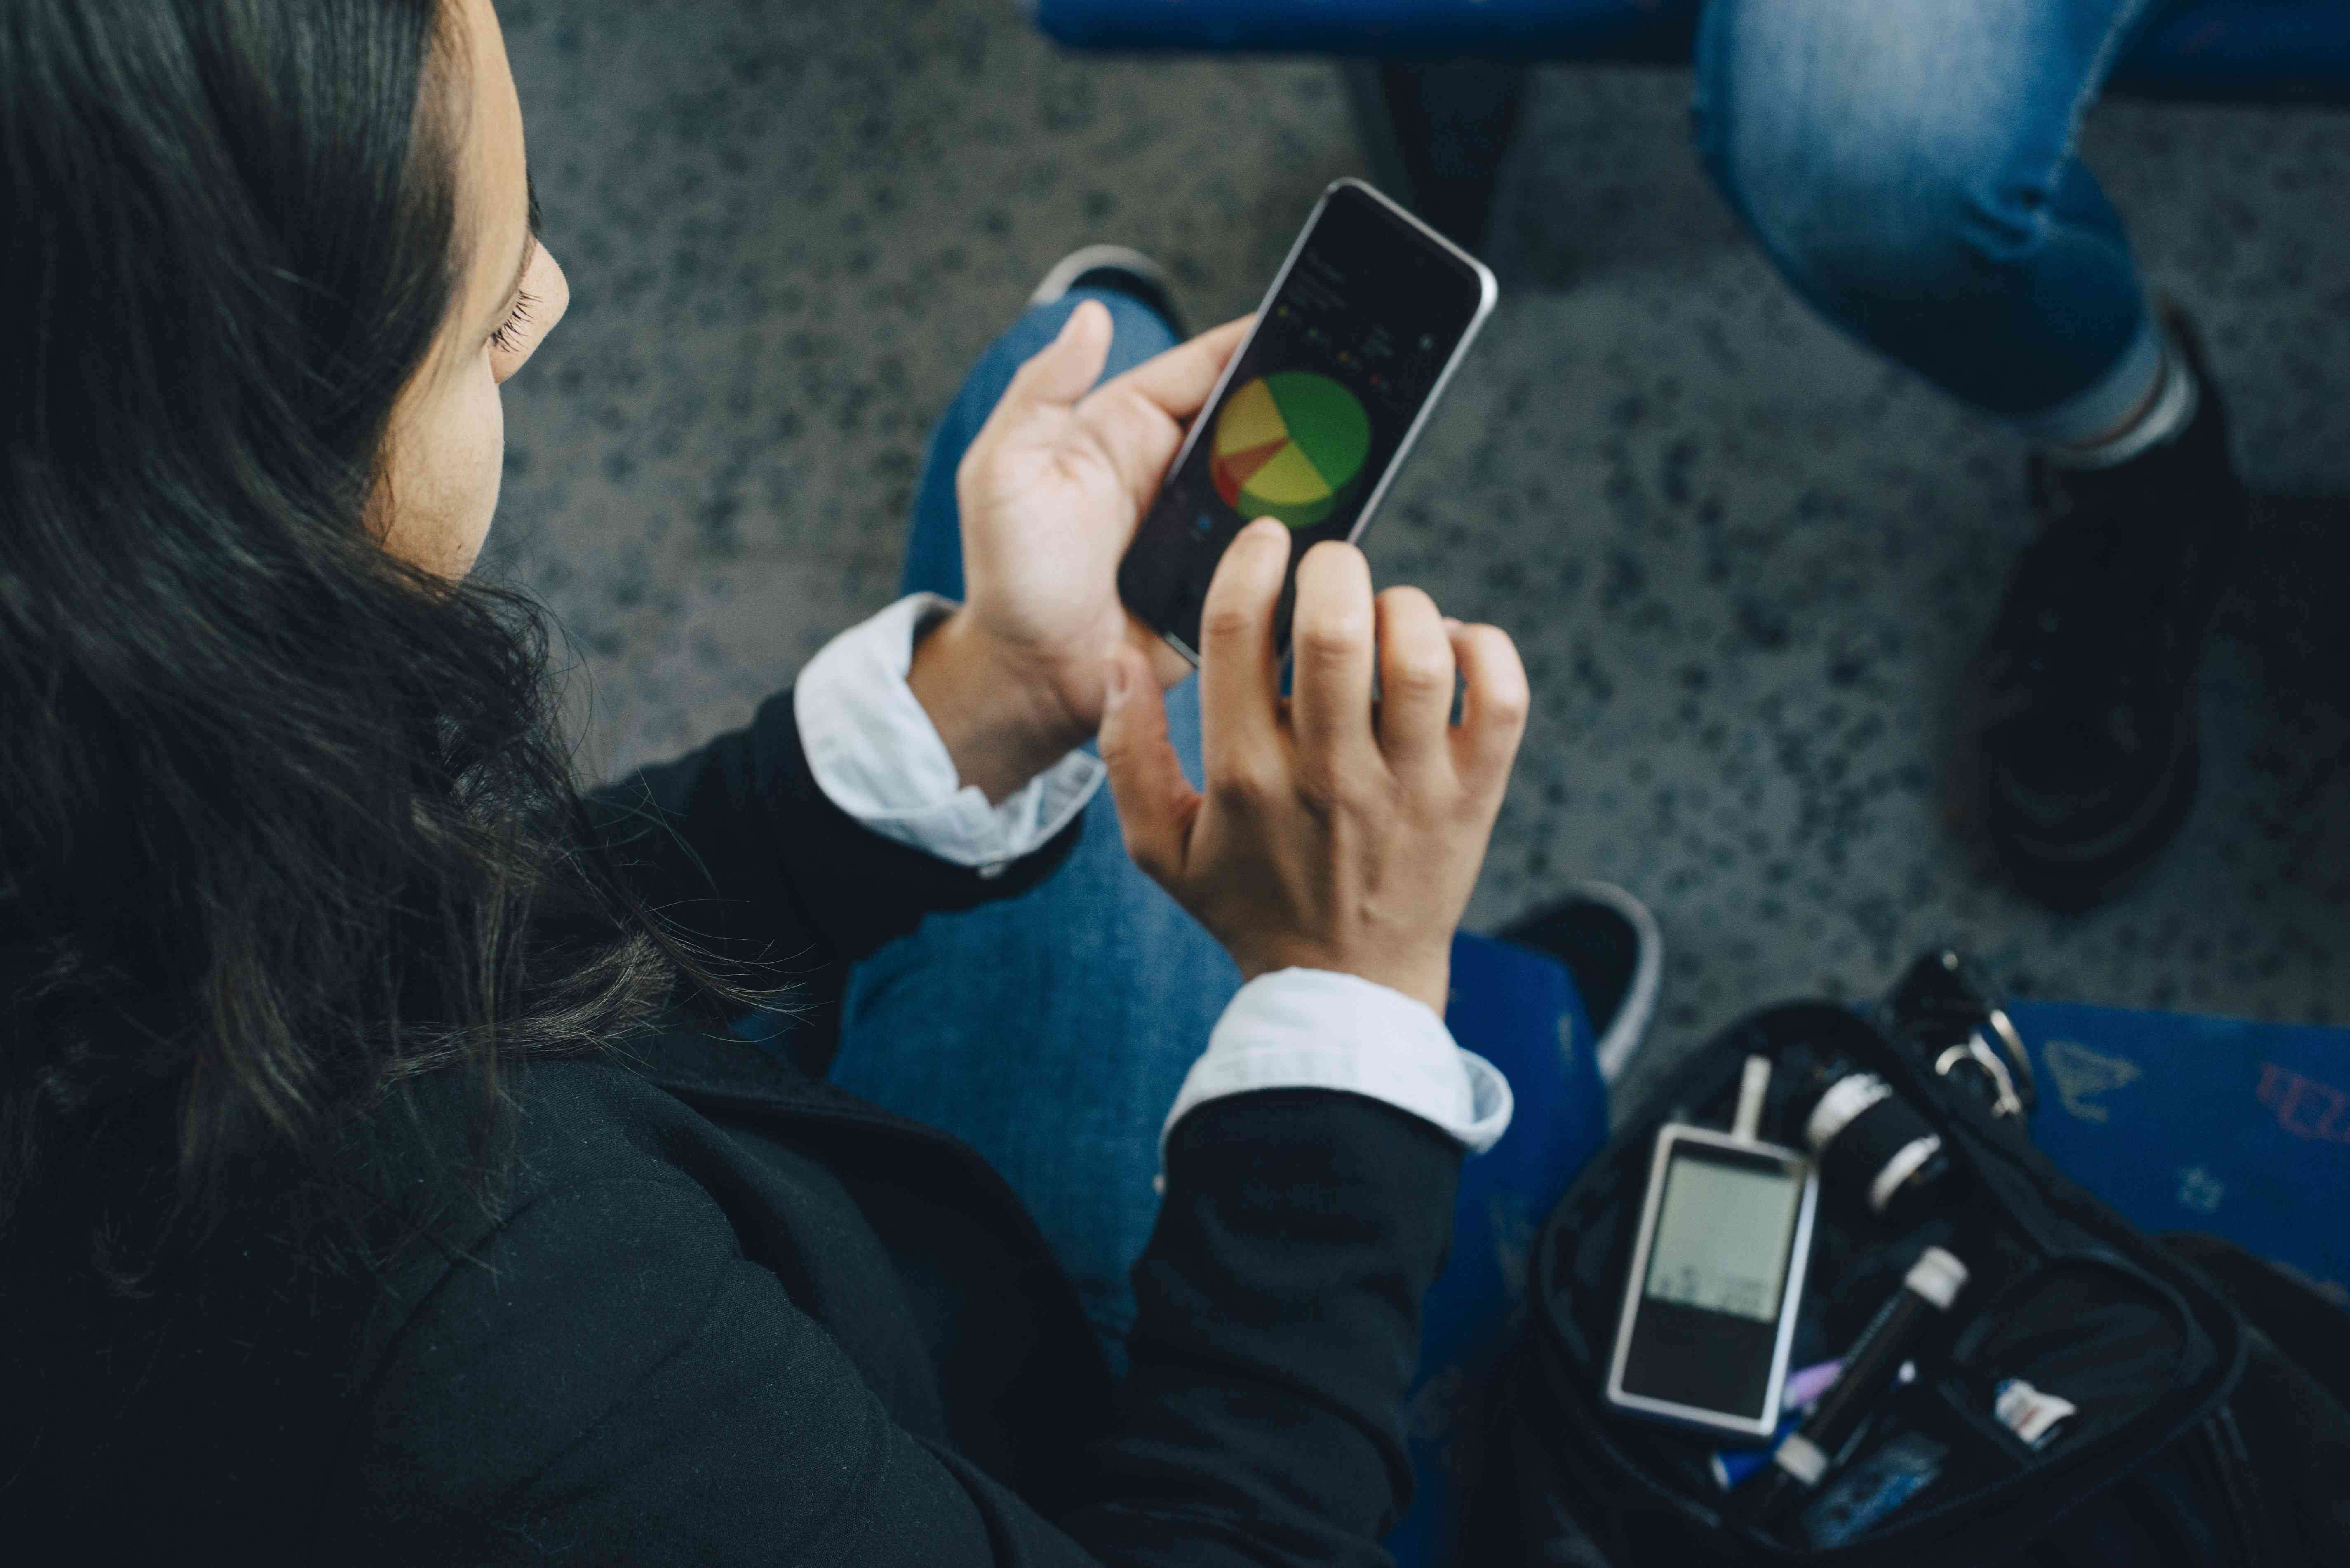 Woman checking blood sugar level and using mobile phone in train